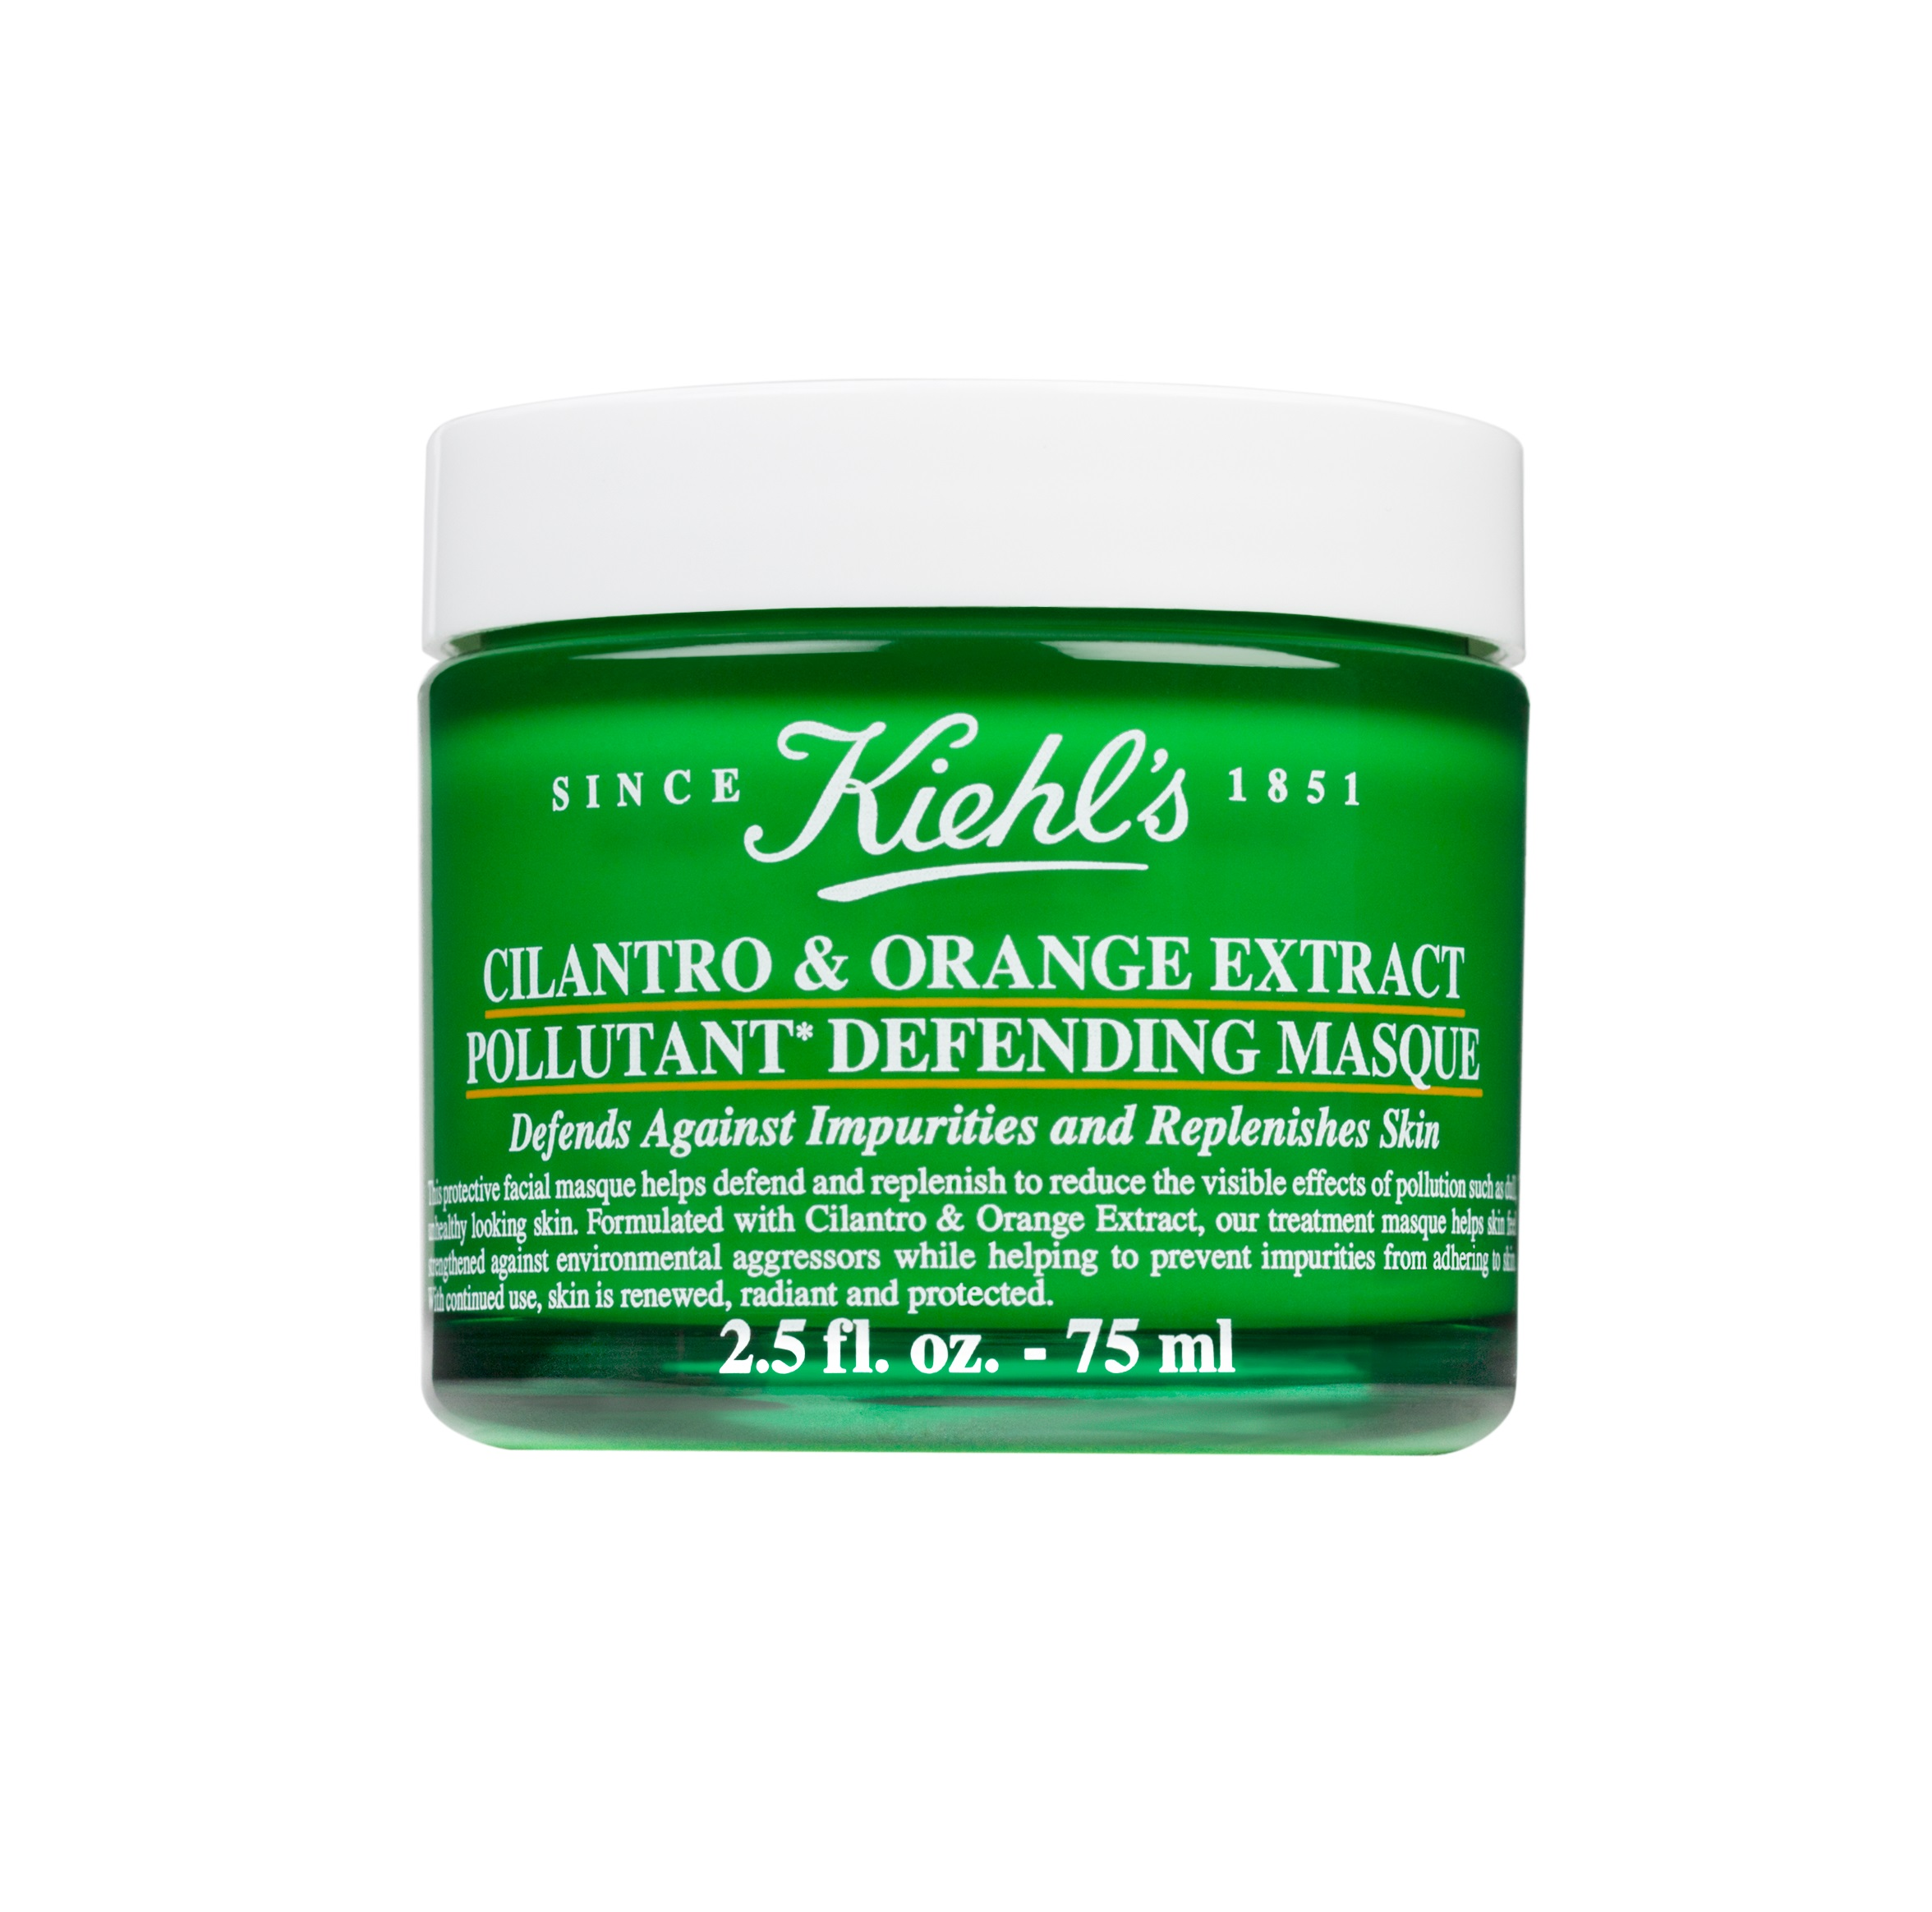 Cilantro & Orange Pollutant Defending Masque 34 euro